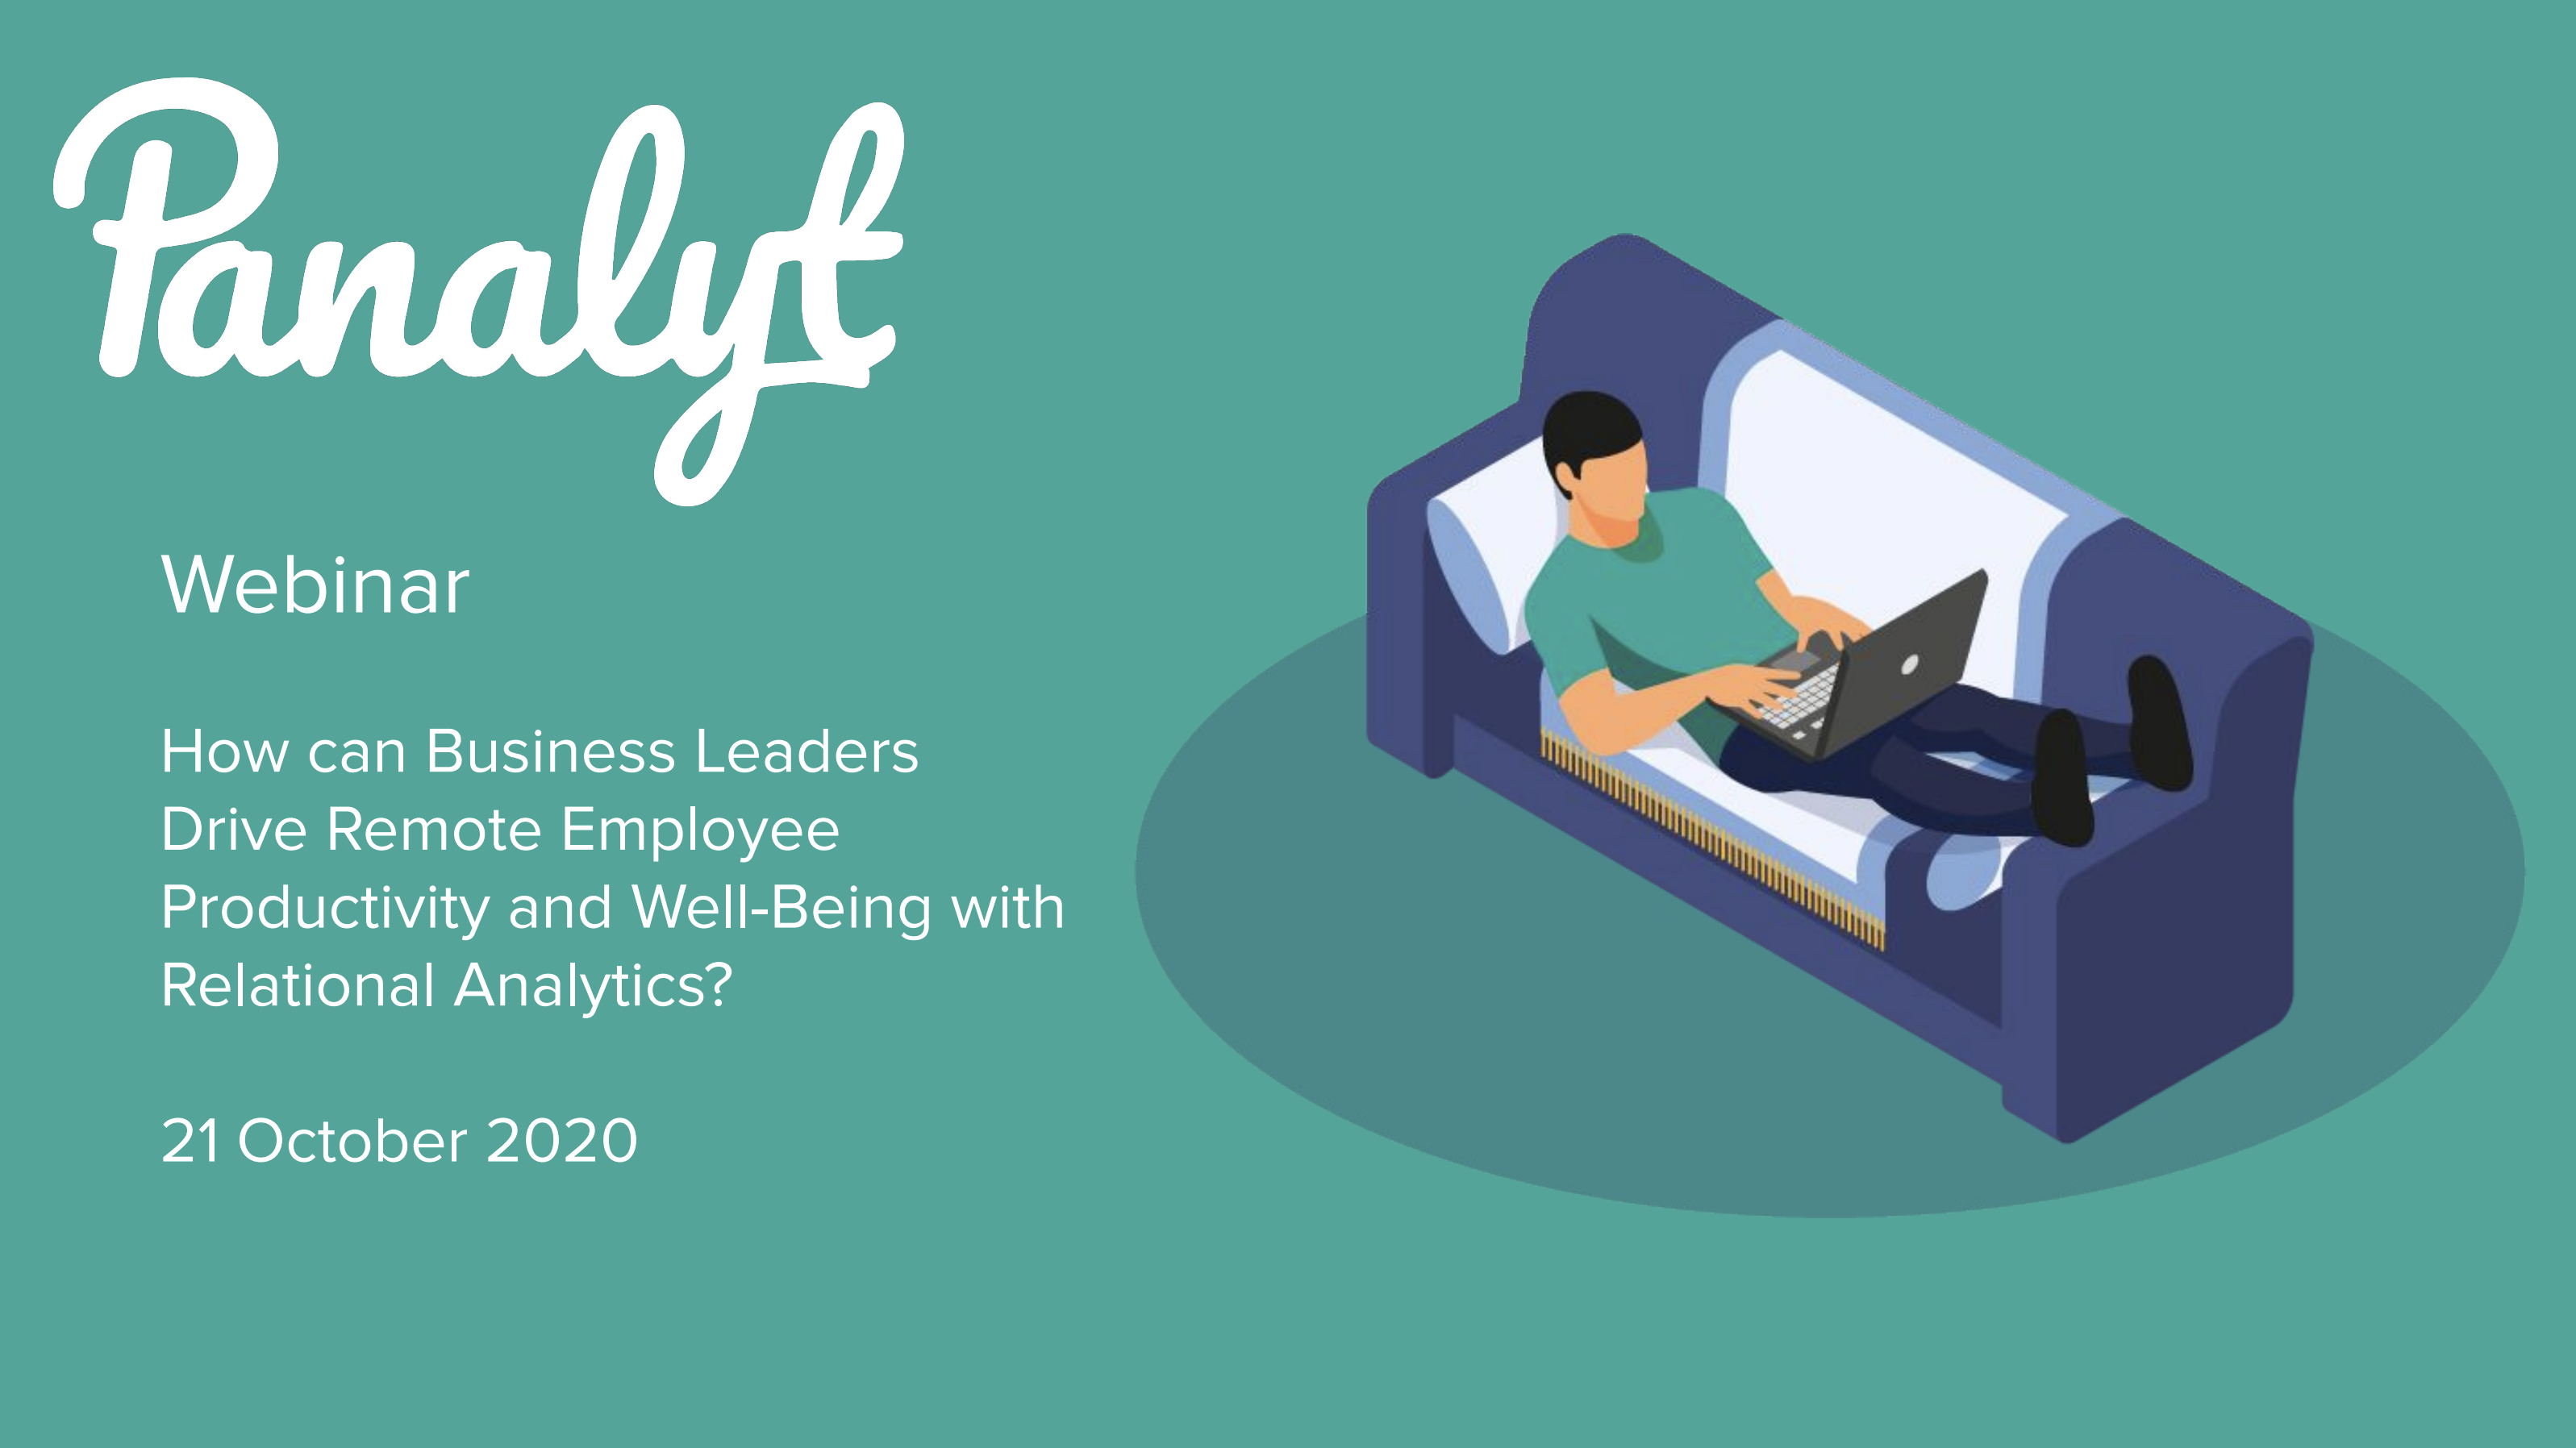 Relational Analytics: How Can Business Leaders Drive Remote Employee Productivity & Well-Being?